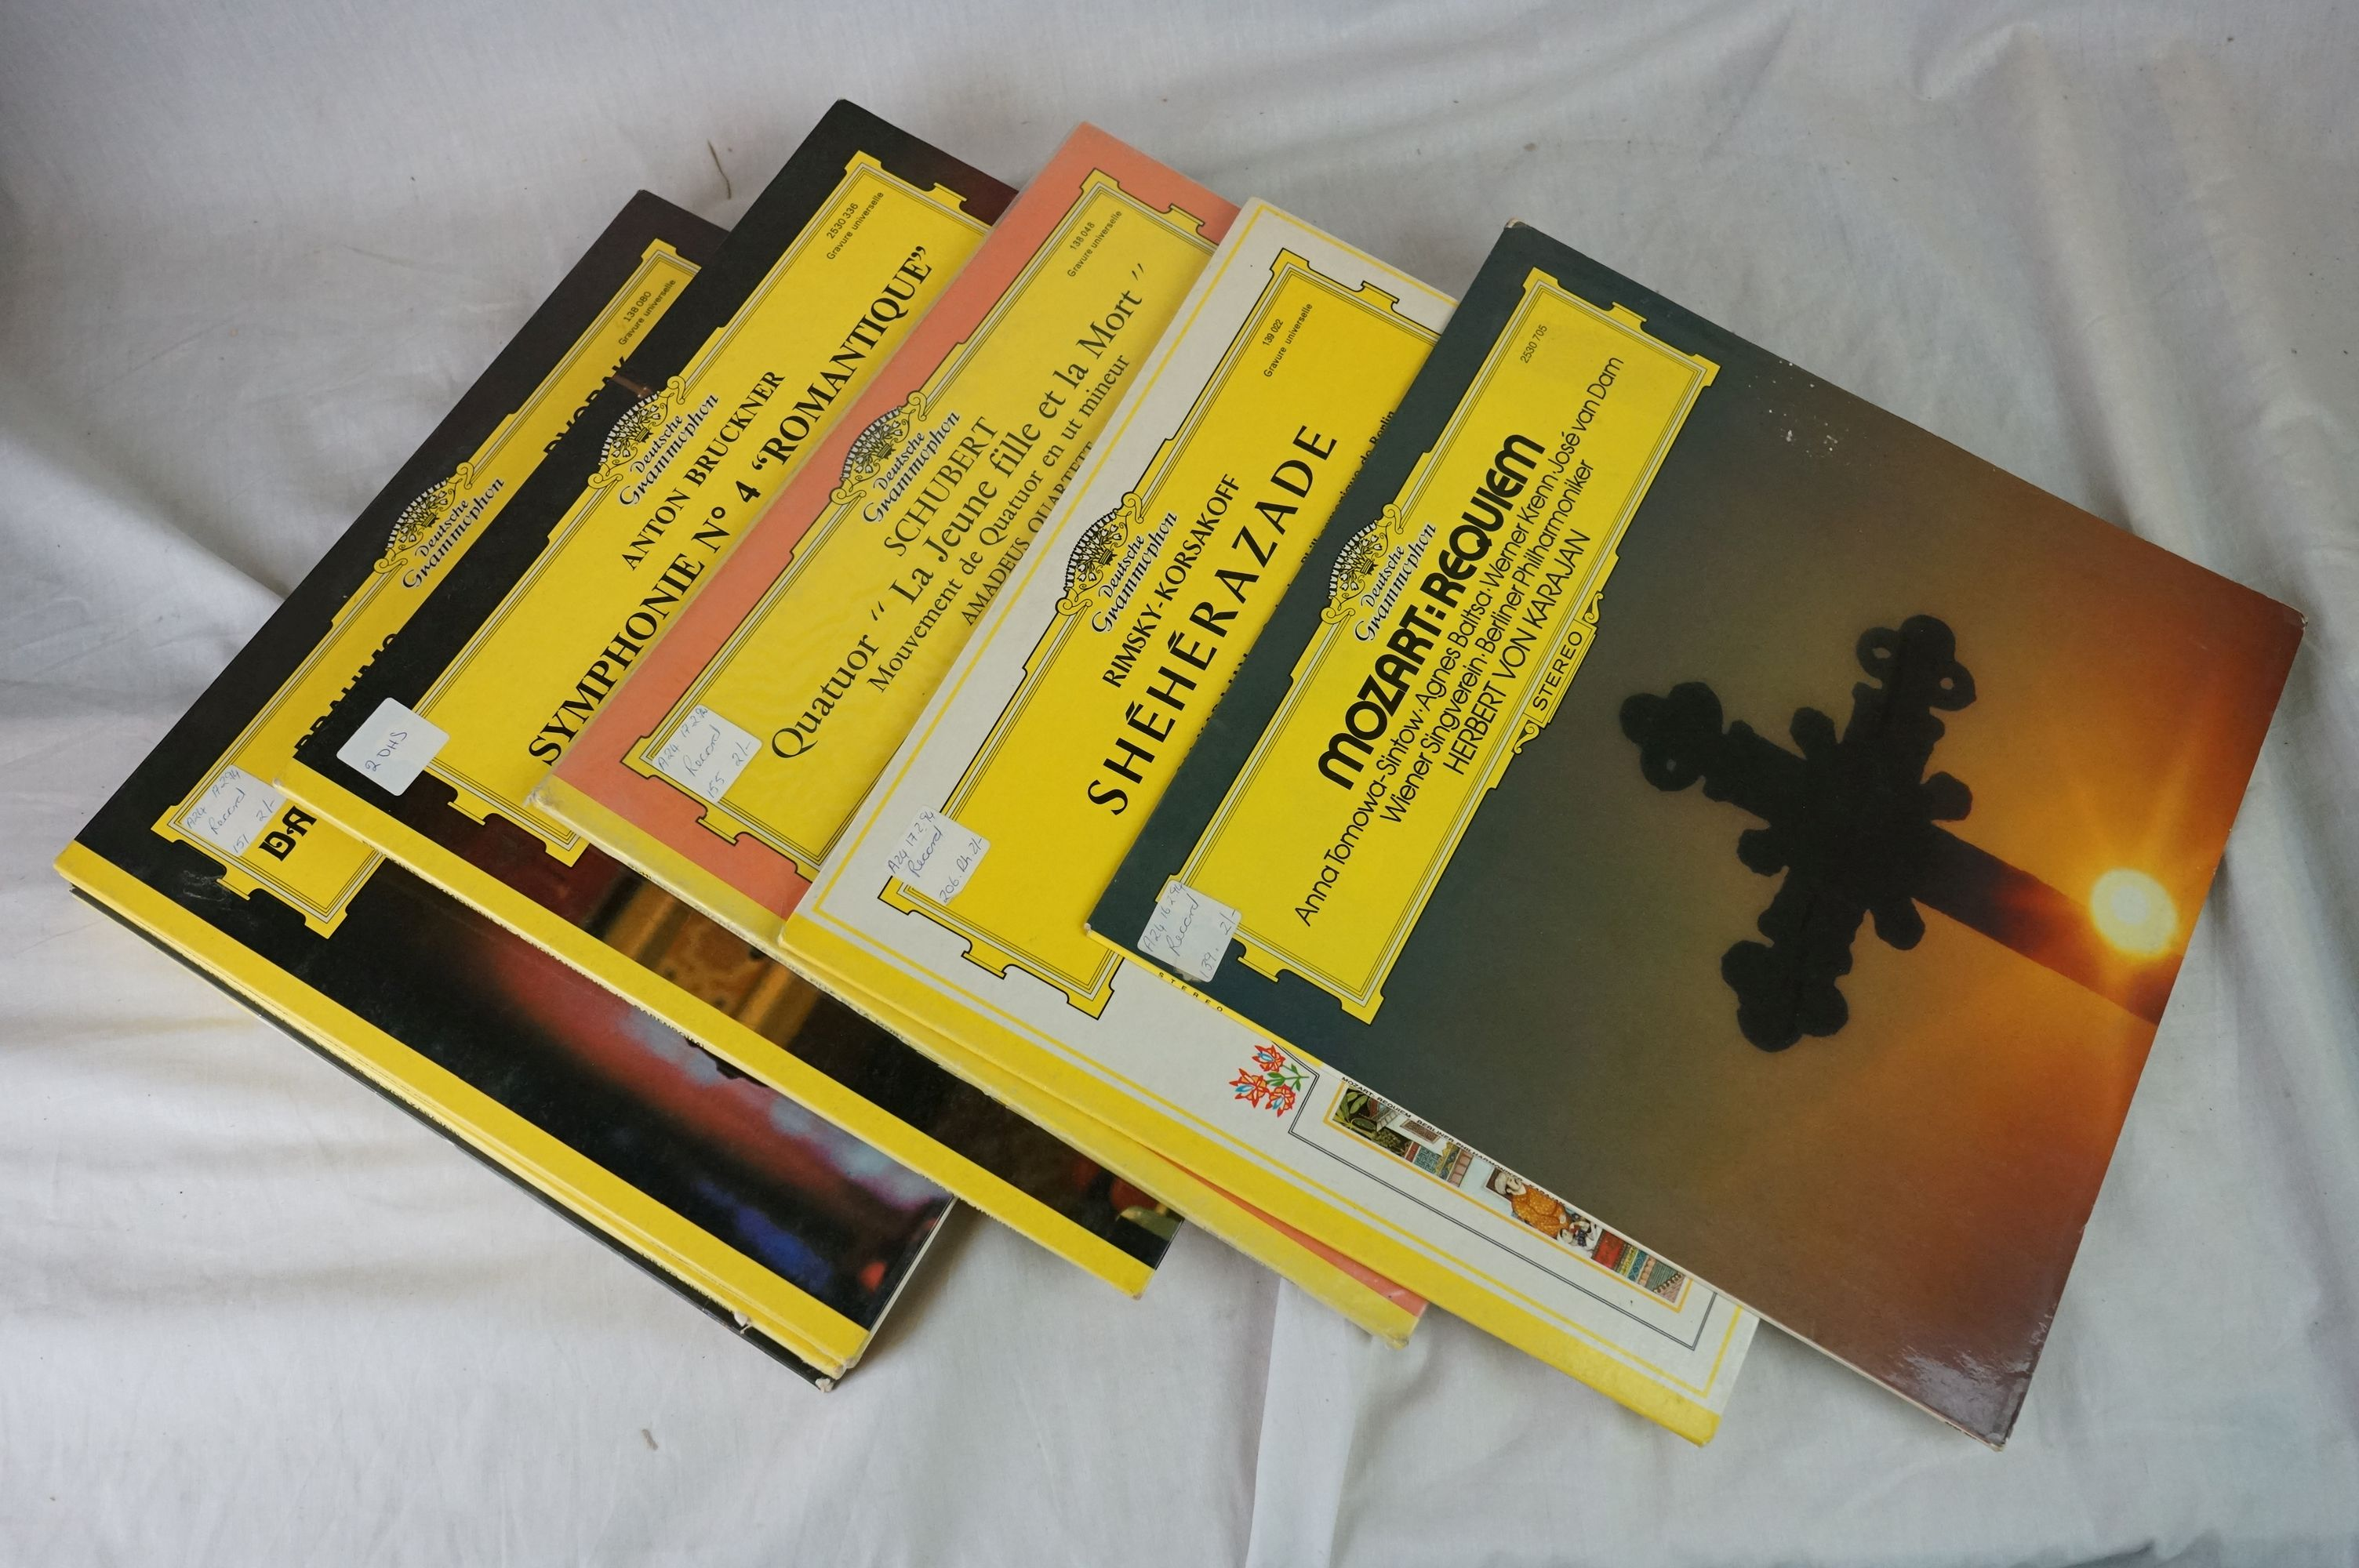 Vinyl - Classical approx 40 LP's to include several Deutsche Grammophon releases. Condition of - Image 2 of 5